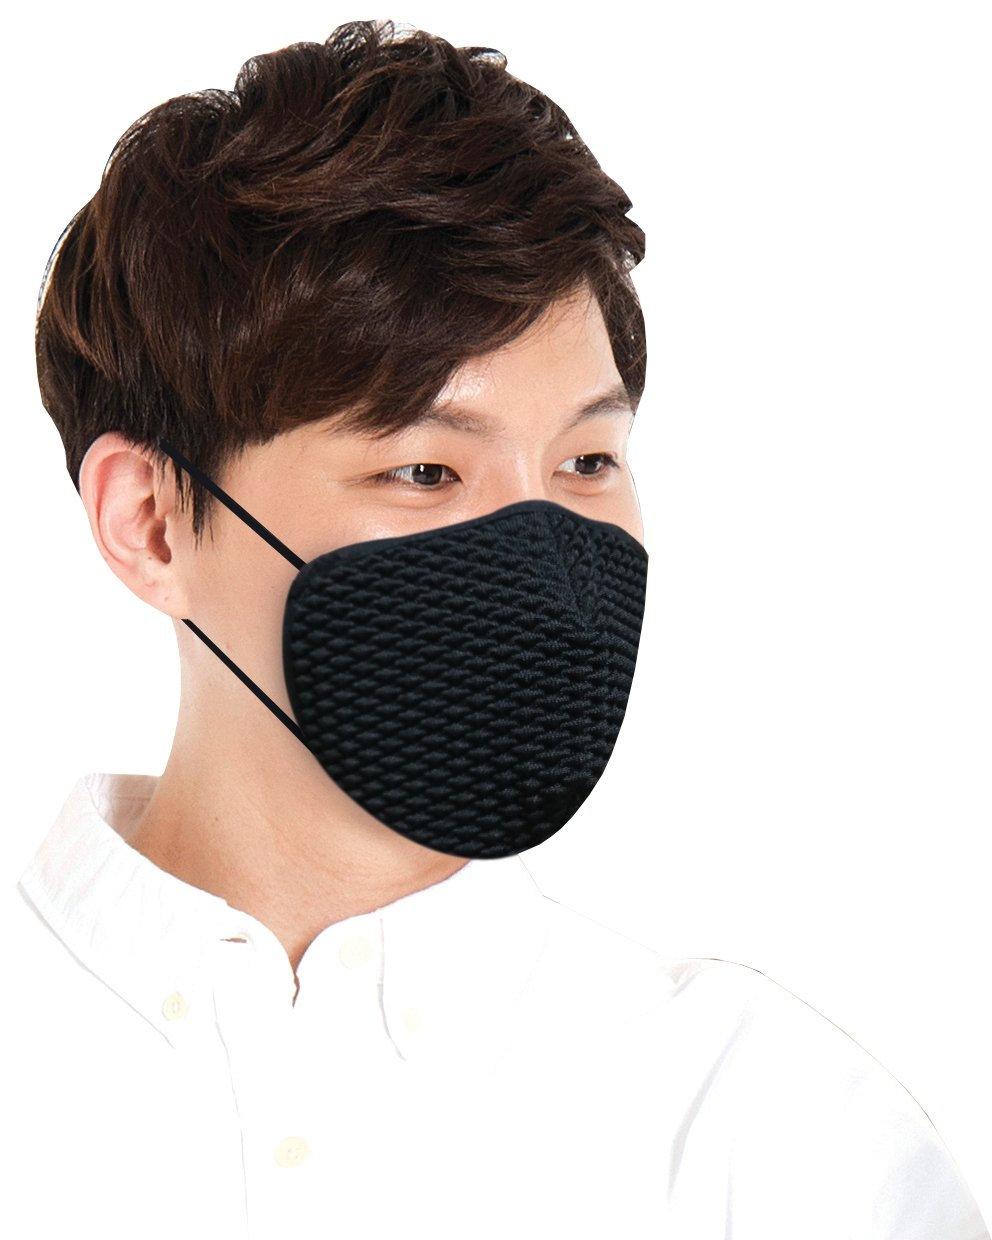 Washable Anti-bacterial Copper Mask (Wash 100 Times)